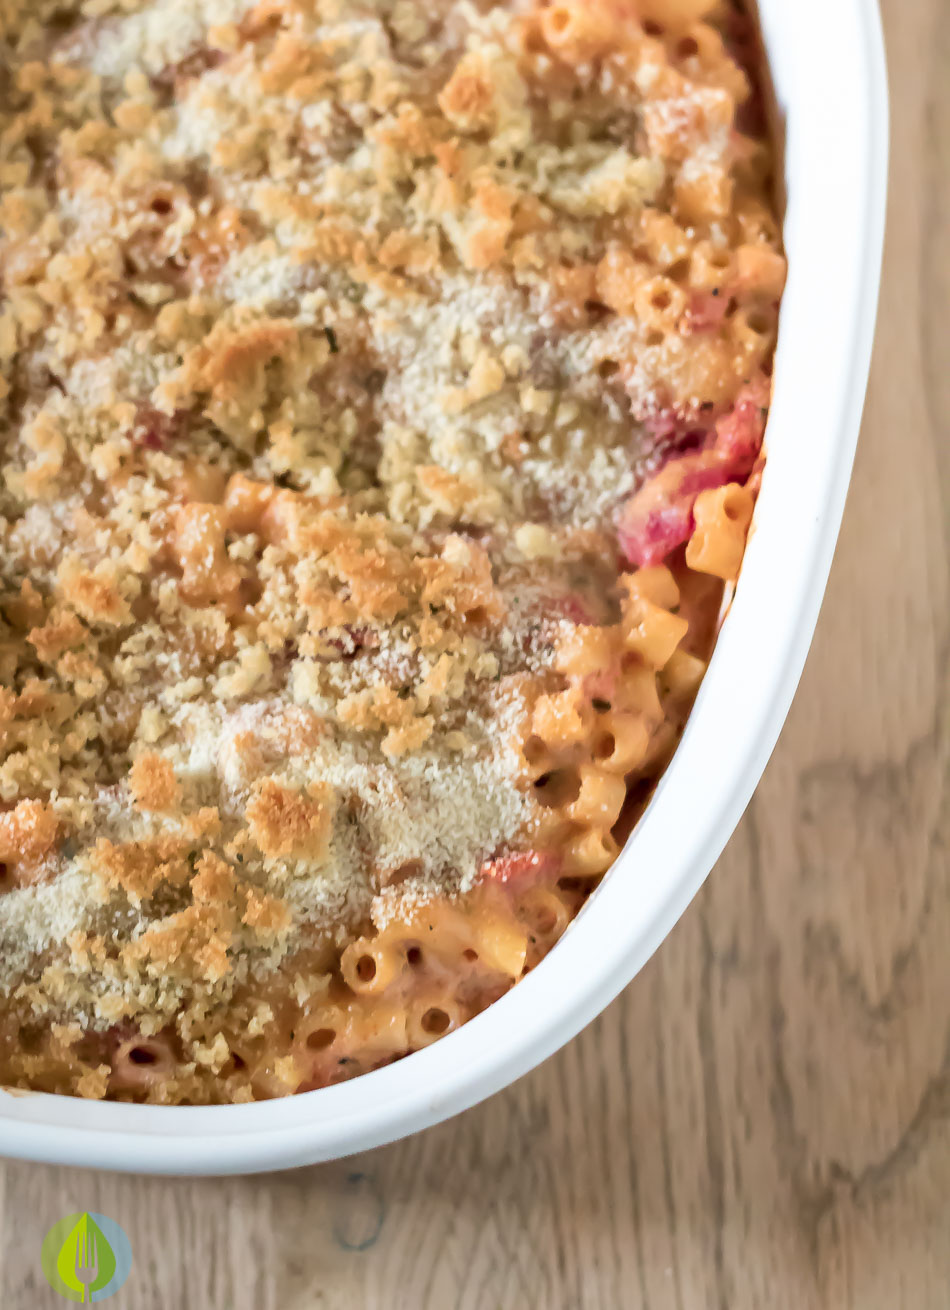 Creamy Tomato Mac and Cheese Bake winter tomatoes pesto pasta cheese cheddar baked